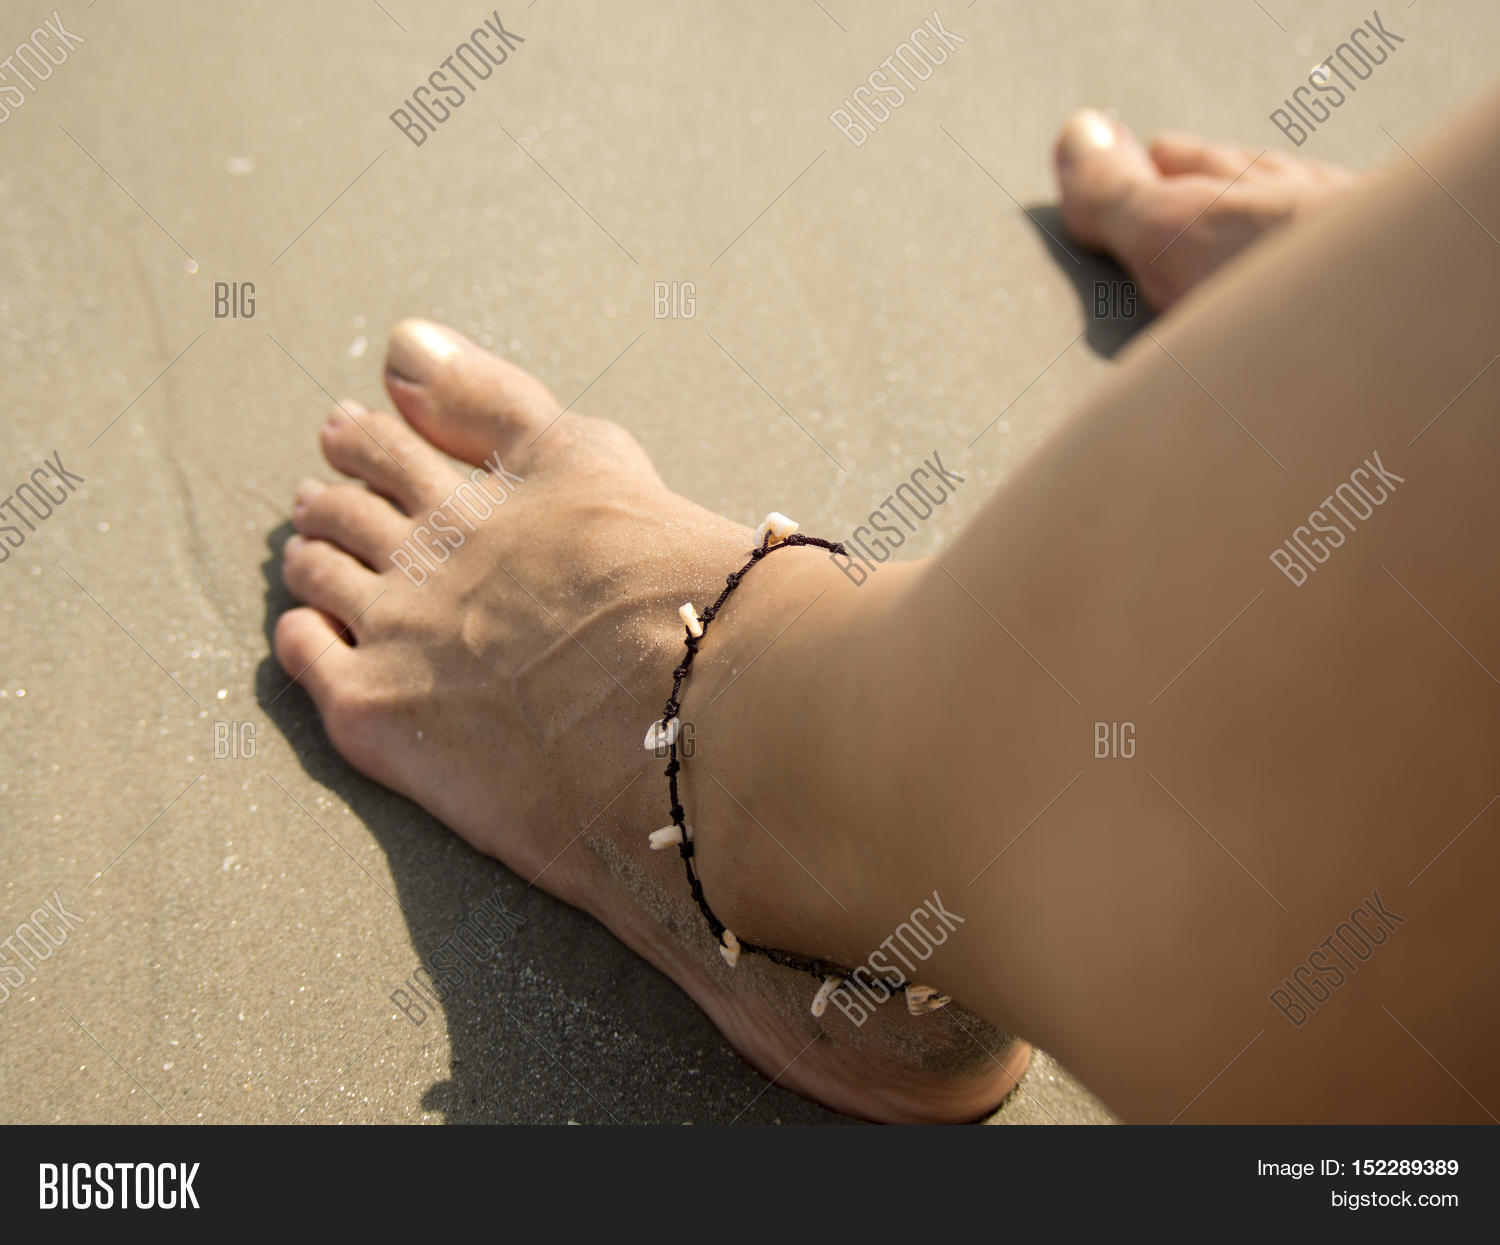 young girl feet image photo free trial bigstock